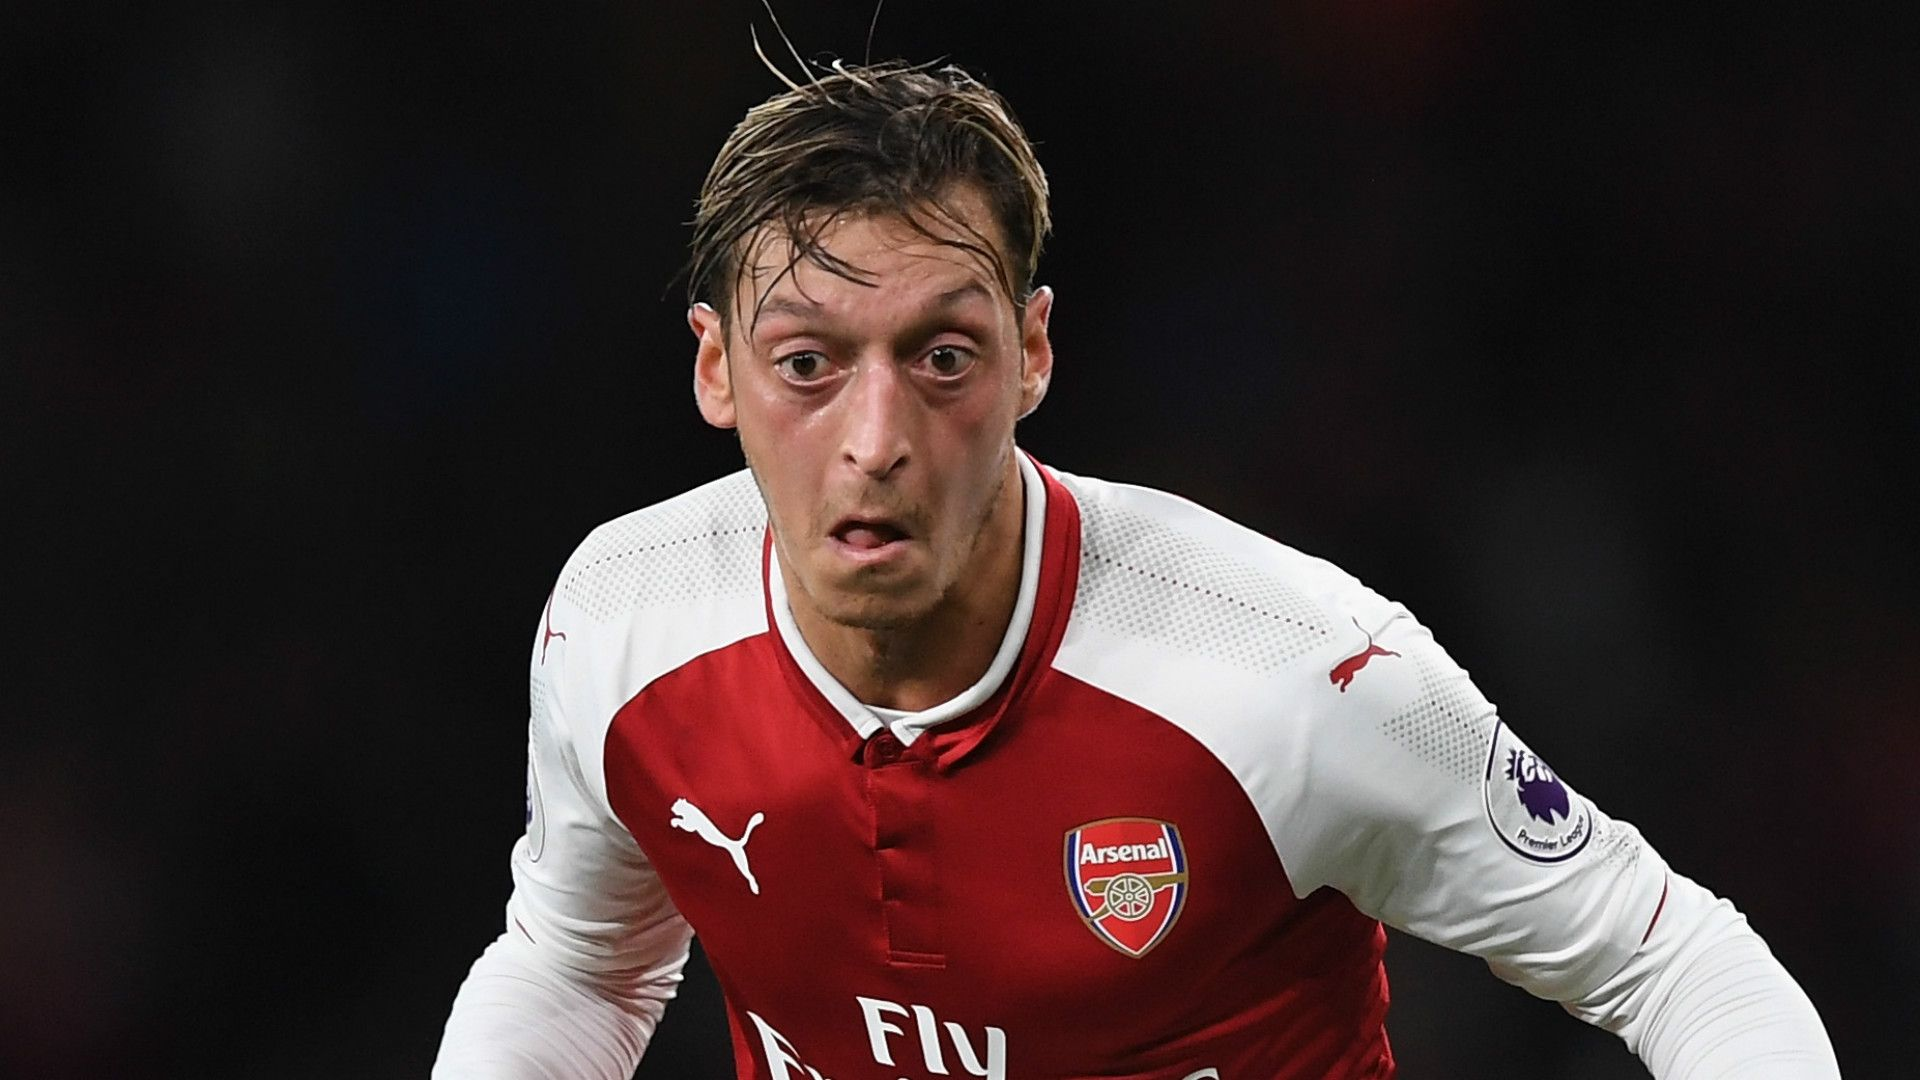 Mesut Ozil Wallpapers Hd Arsenal Mesut Ozil Latest Best Photos And Full Hd Wallpapers